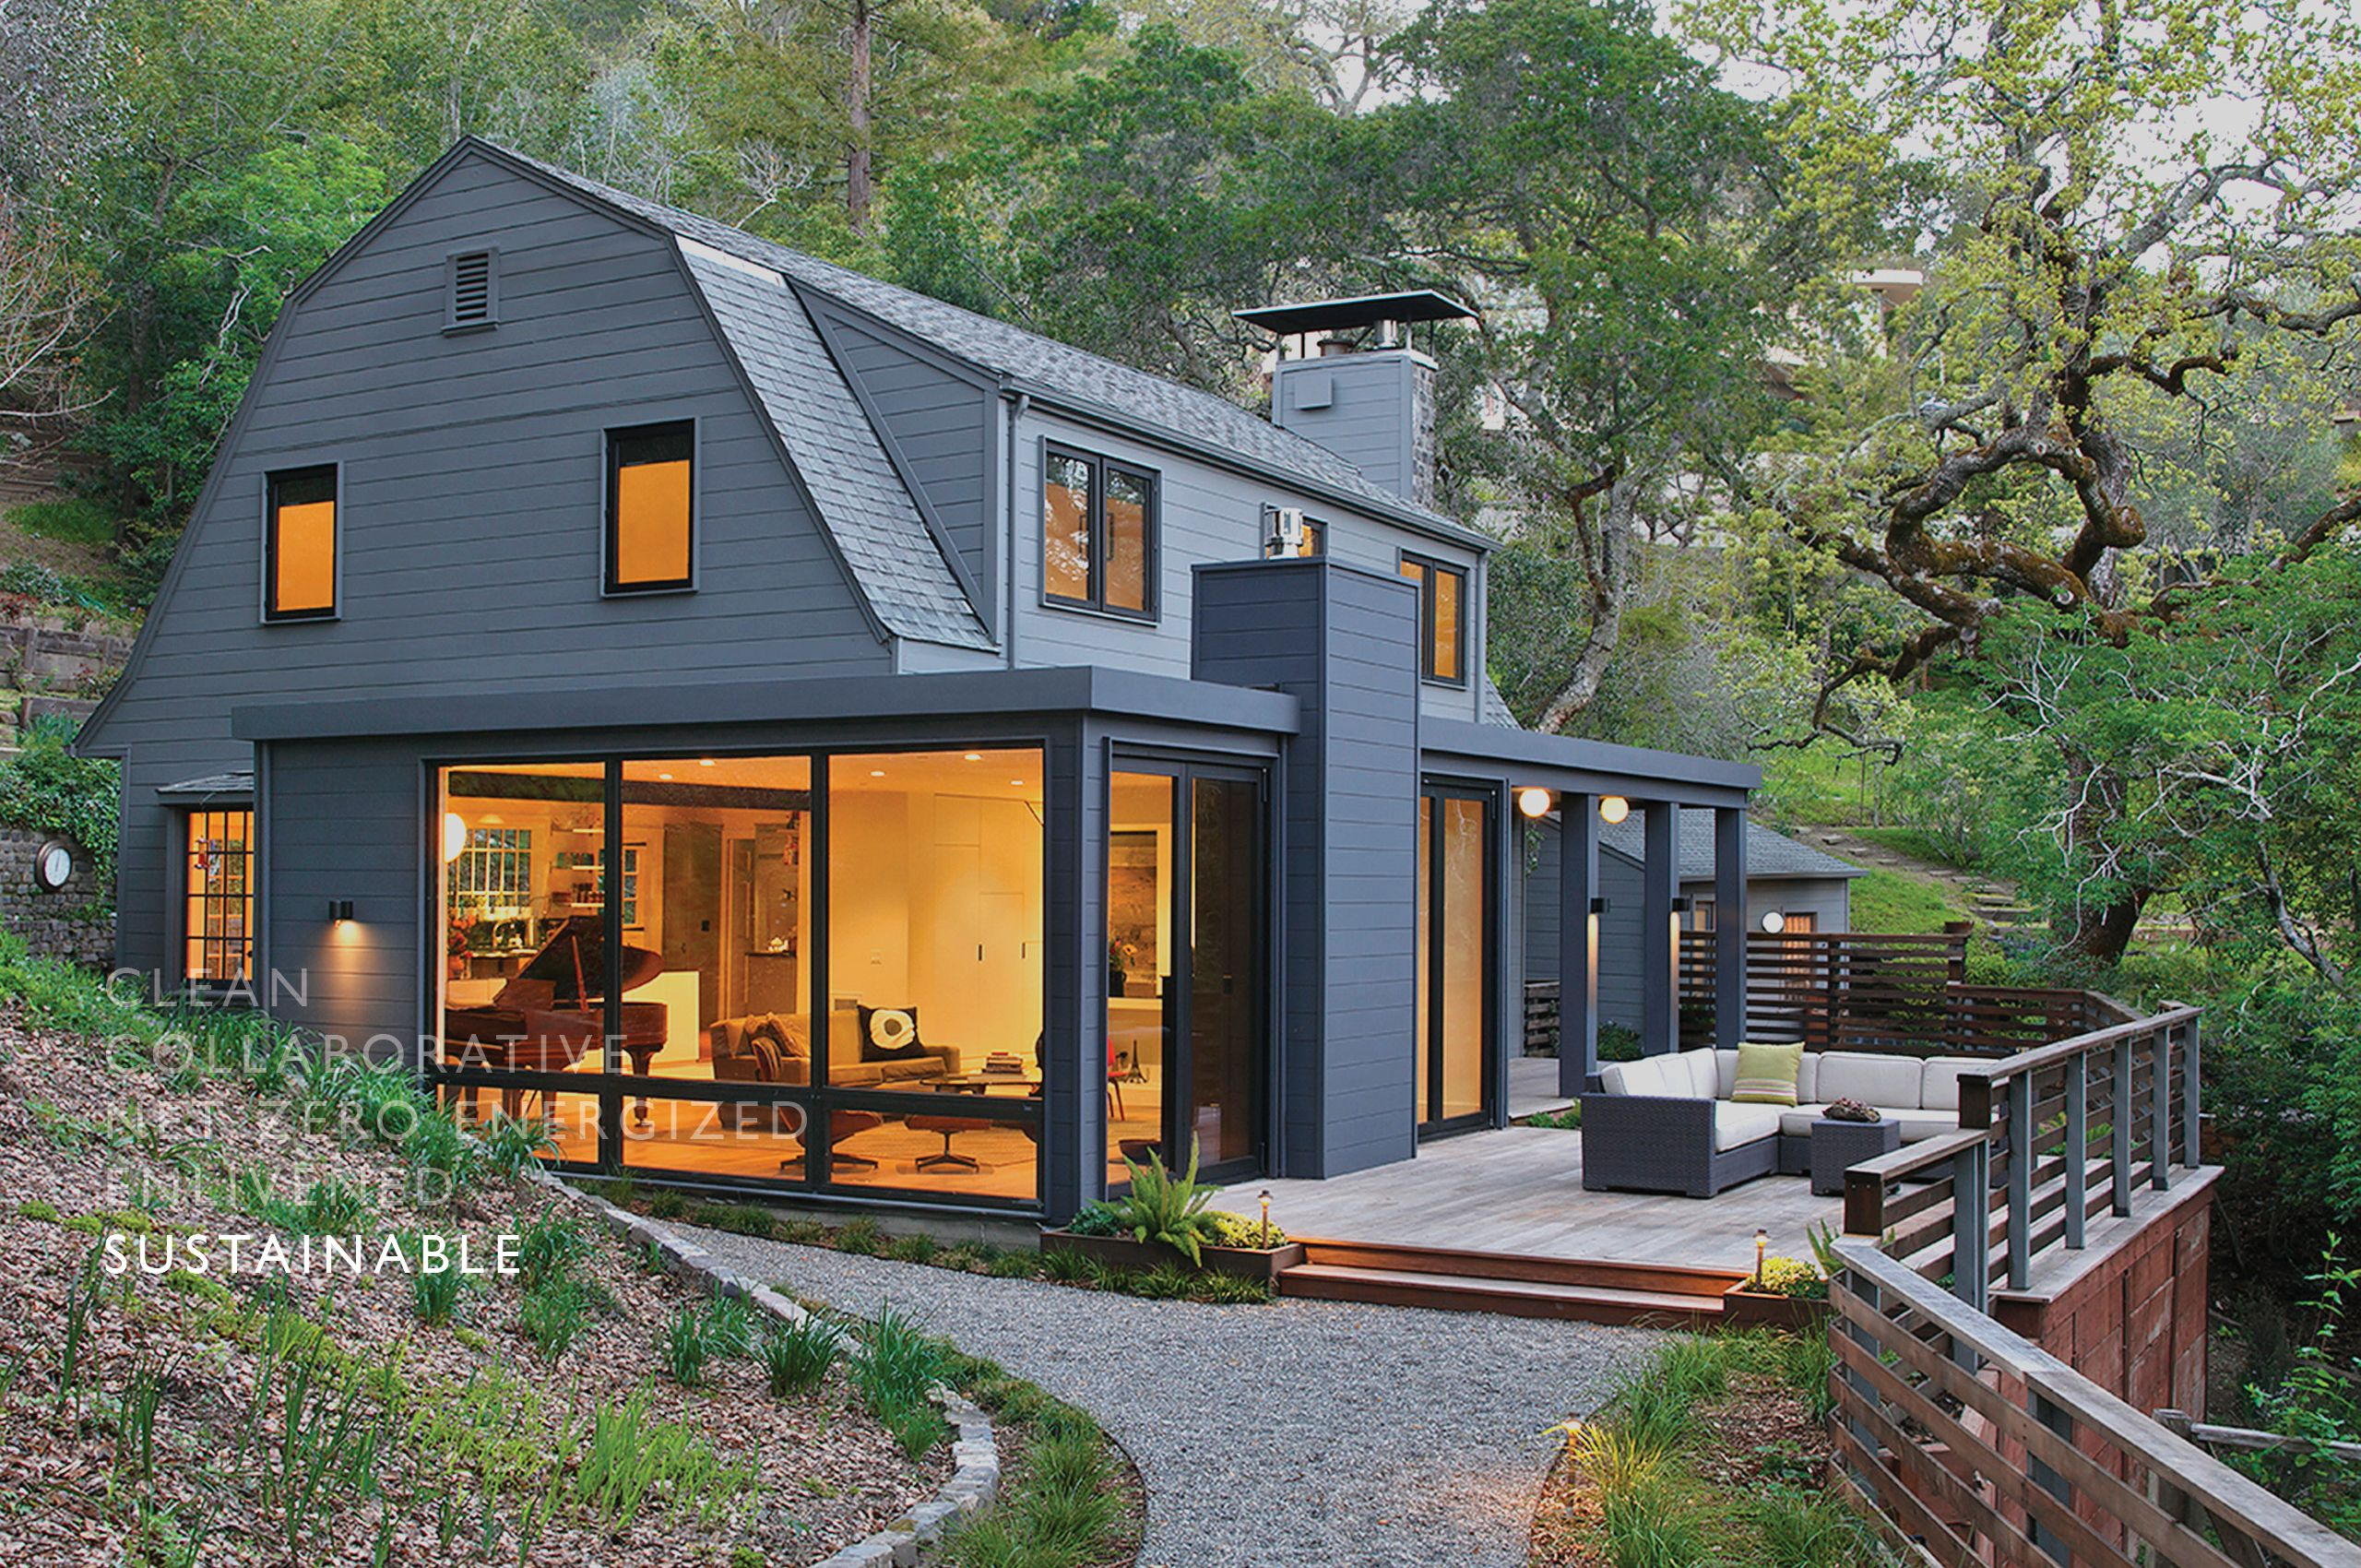 Sustainable Architecture in Marin County, California